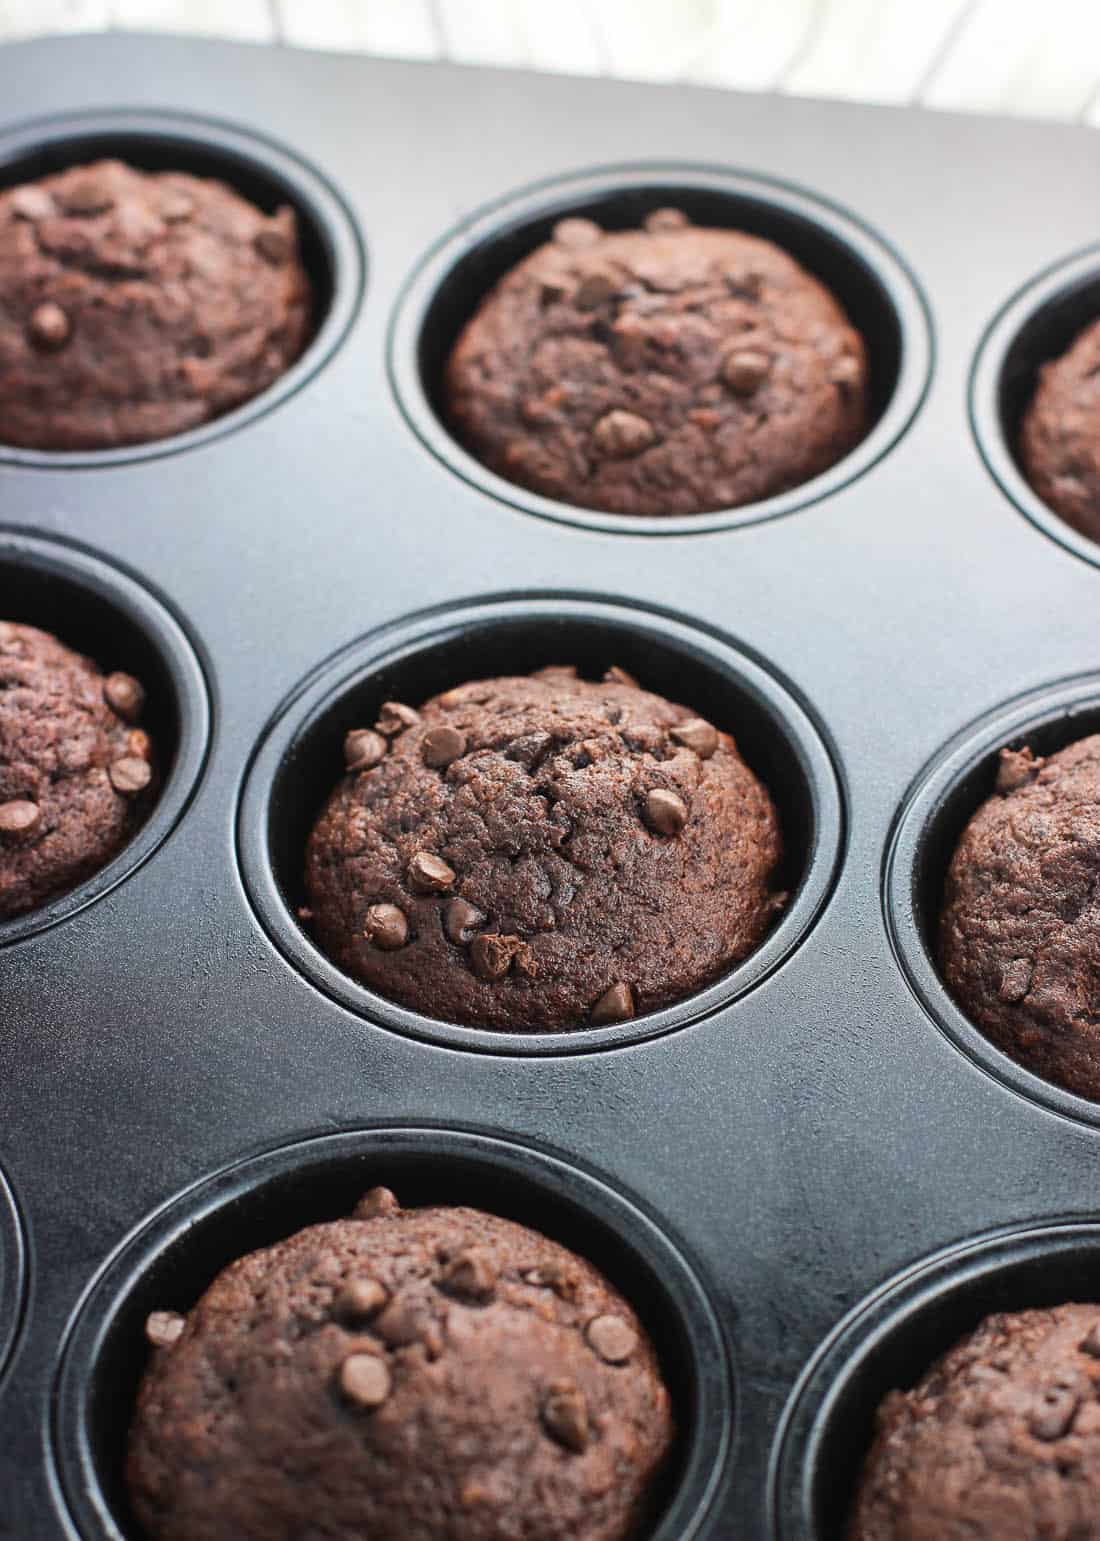 These chocolate pudding muffins are insanely moist and feature chocolate chips with a rich chocolate banana flavor. Adding pudding mix to the batter helps ensure these chocolate banana muffins stay moist for days.